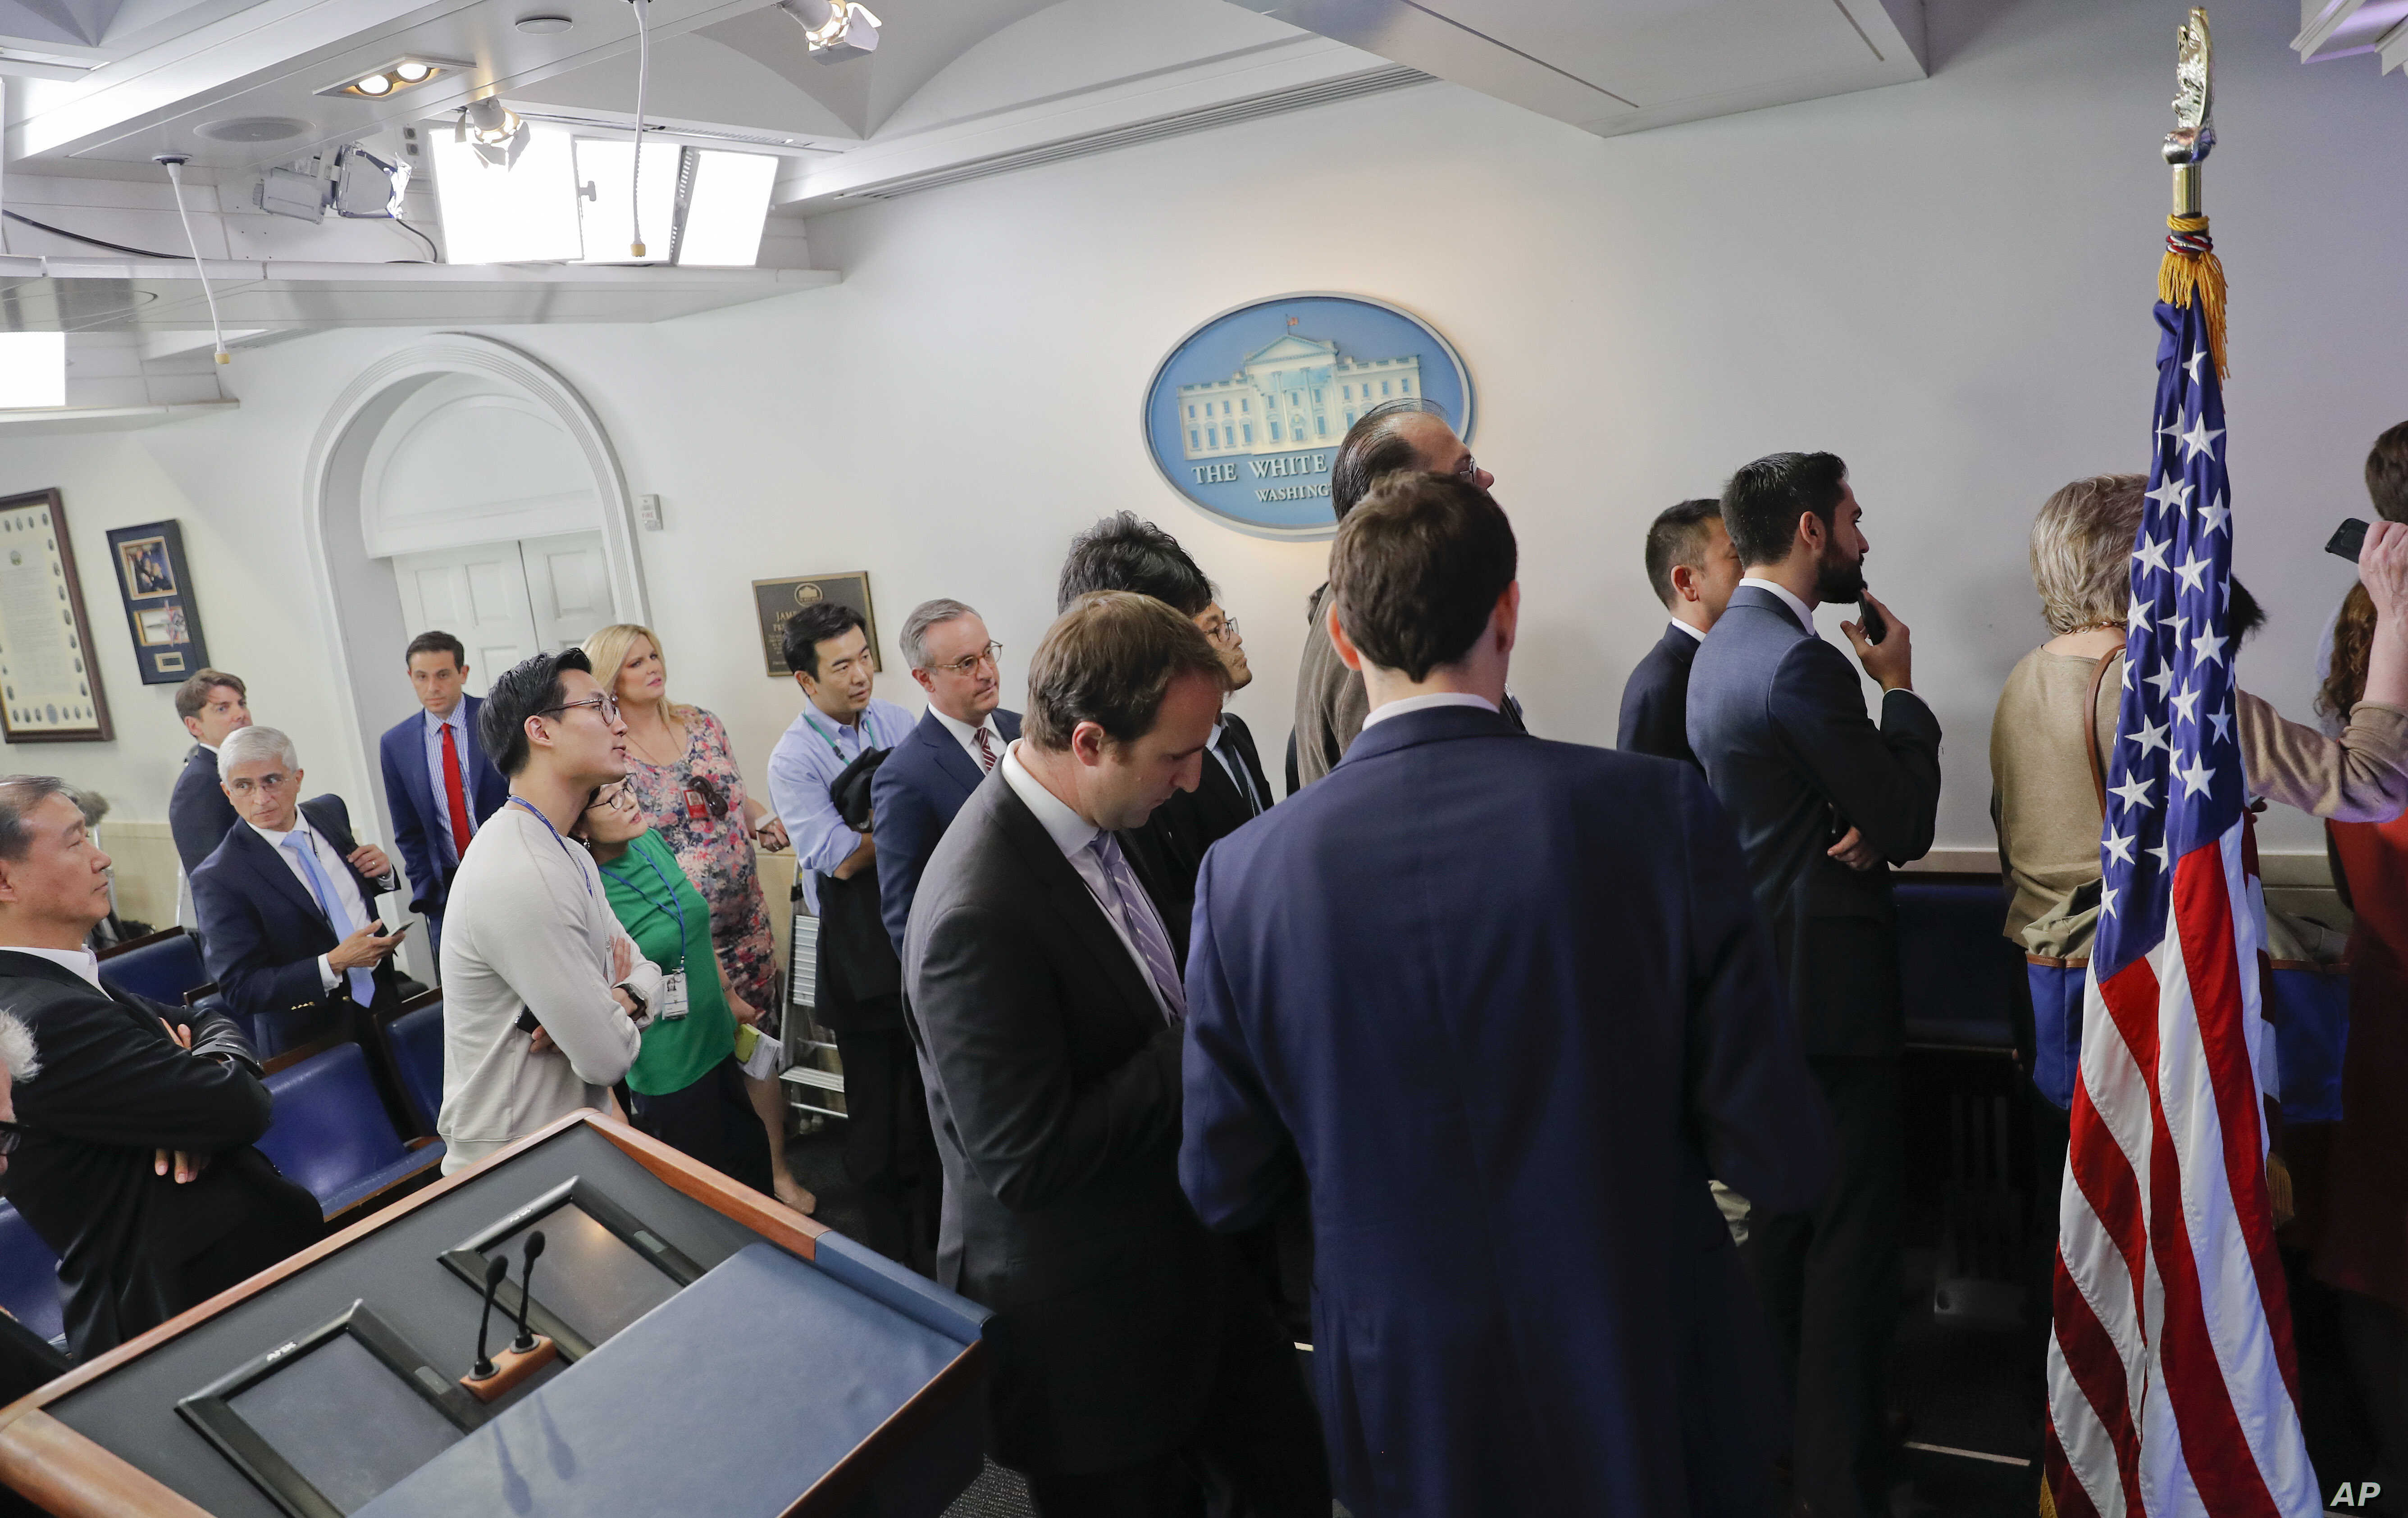 Reporters line up in hopes of attending a briefing in Press Secretary Sean Spicer's office at the White House in Washington, Feb. 24, 2017. White House held an off camera briefing in Spicer's office, where they selected who could attend.